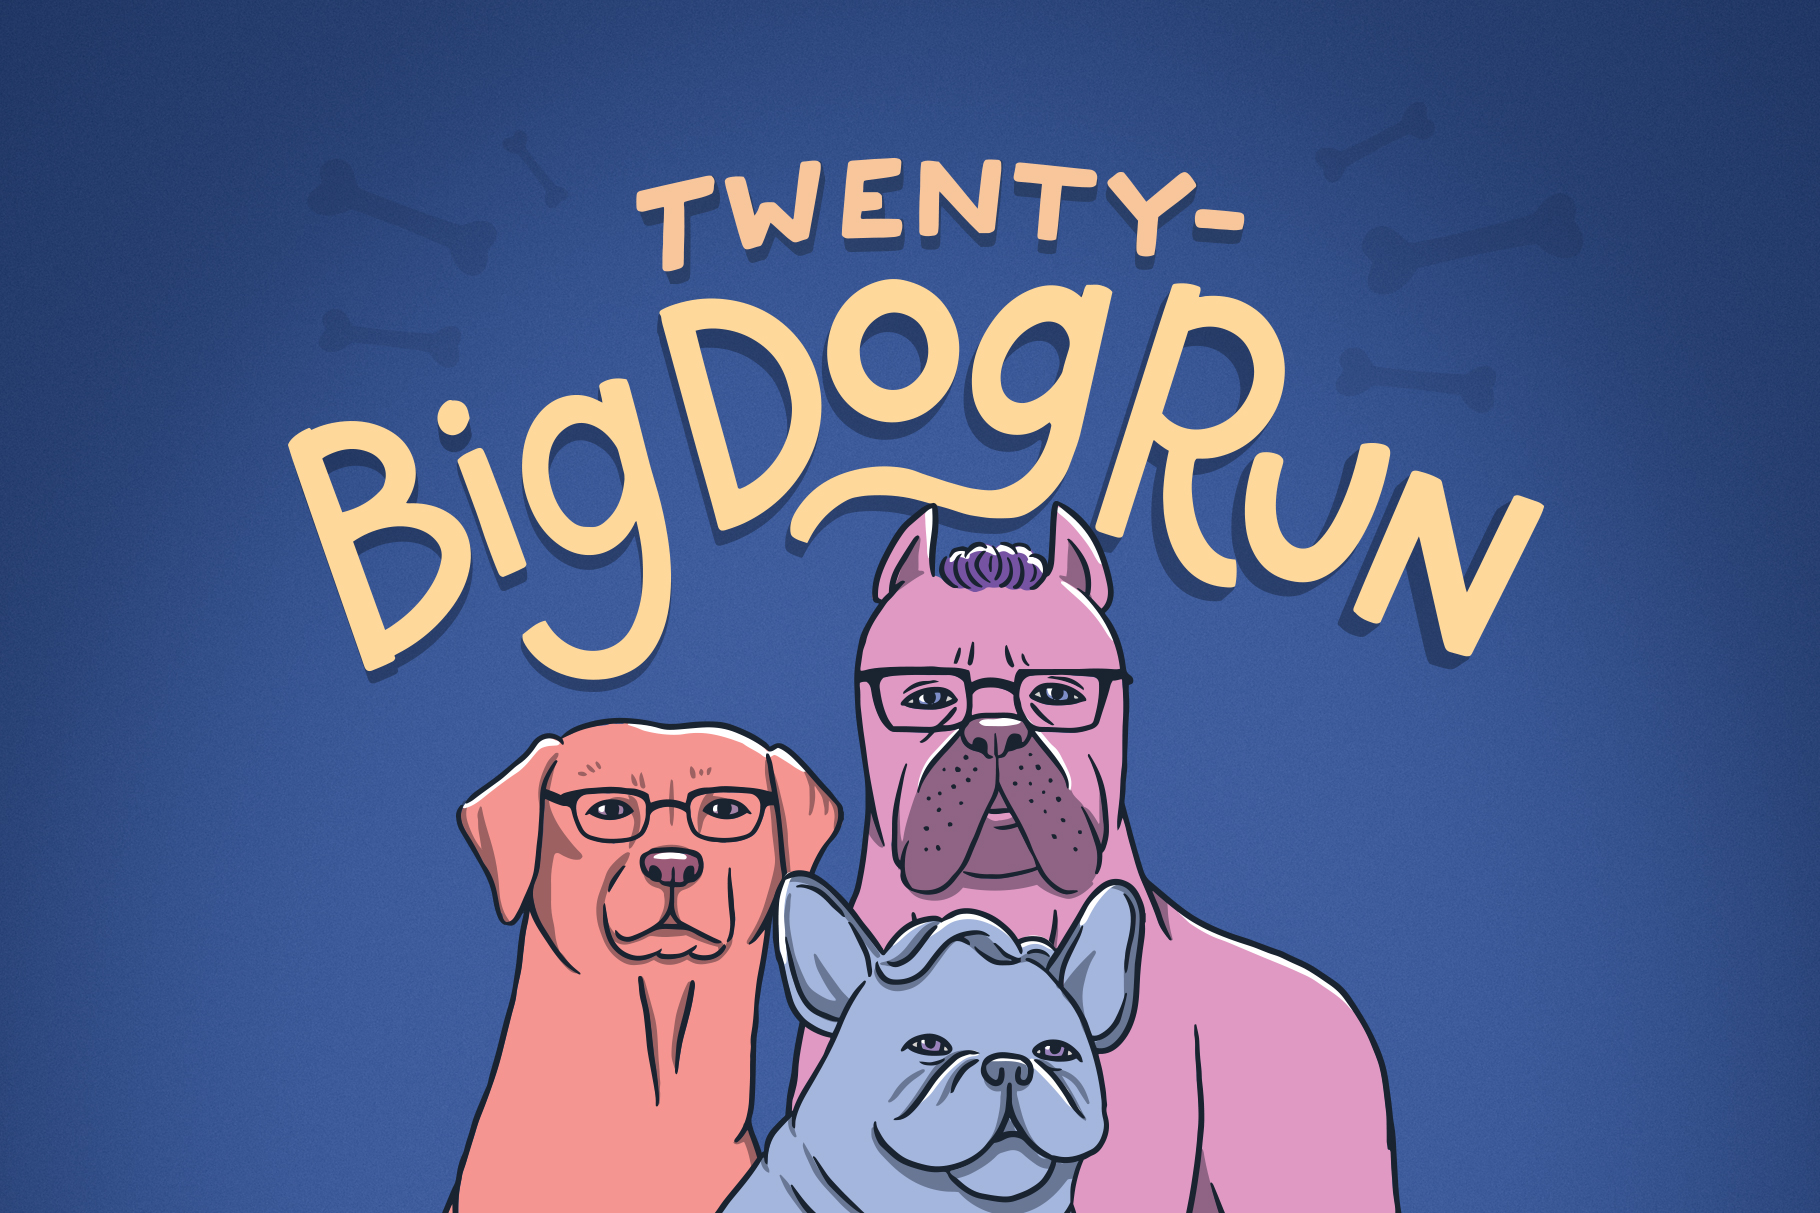 """An illustration of the brothers as dogs. Griffin is an orange Labrador wearing glasses. Travis is a purple Mastiff wearing glasses. Justin is a light blue French Bulldog. Above them is the text """"Twenty Big Dog Run"""". The background is blue with dark blue bones around the text."""